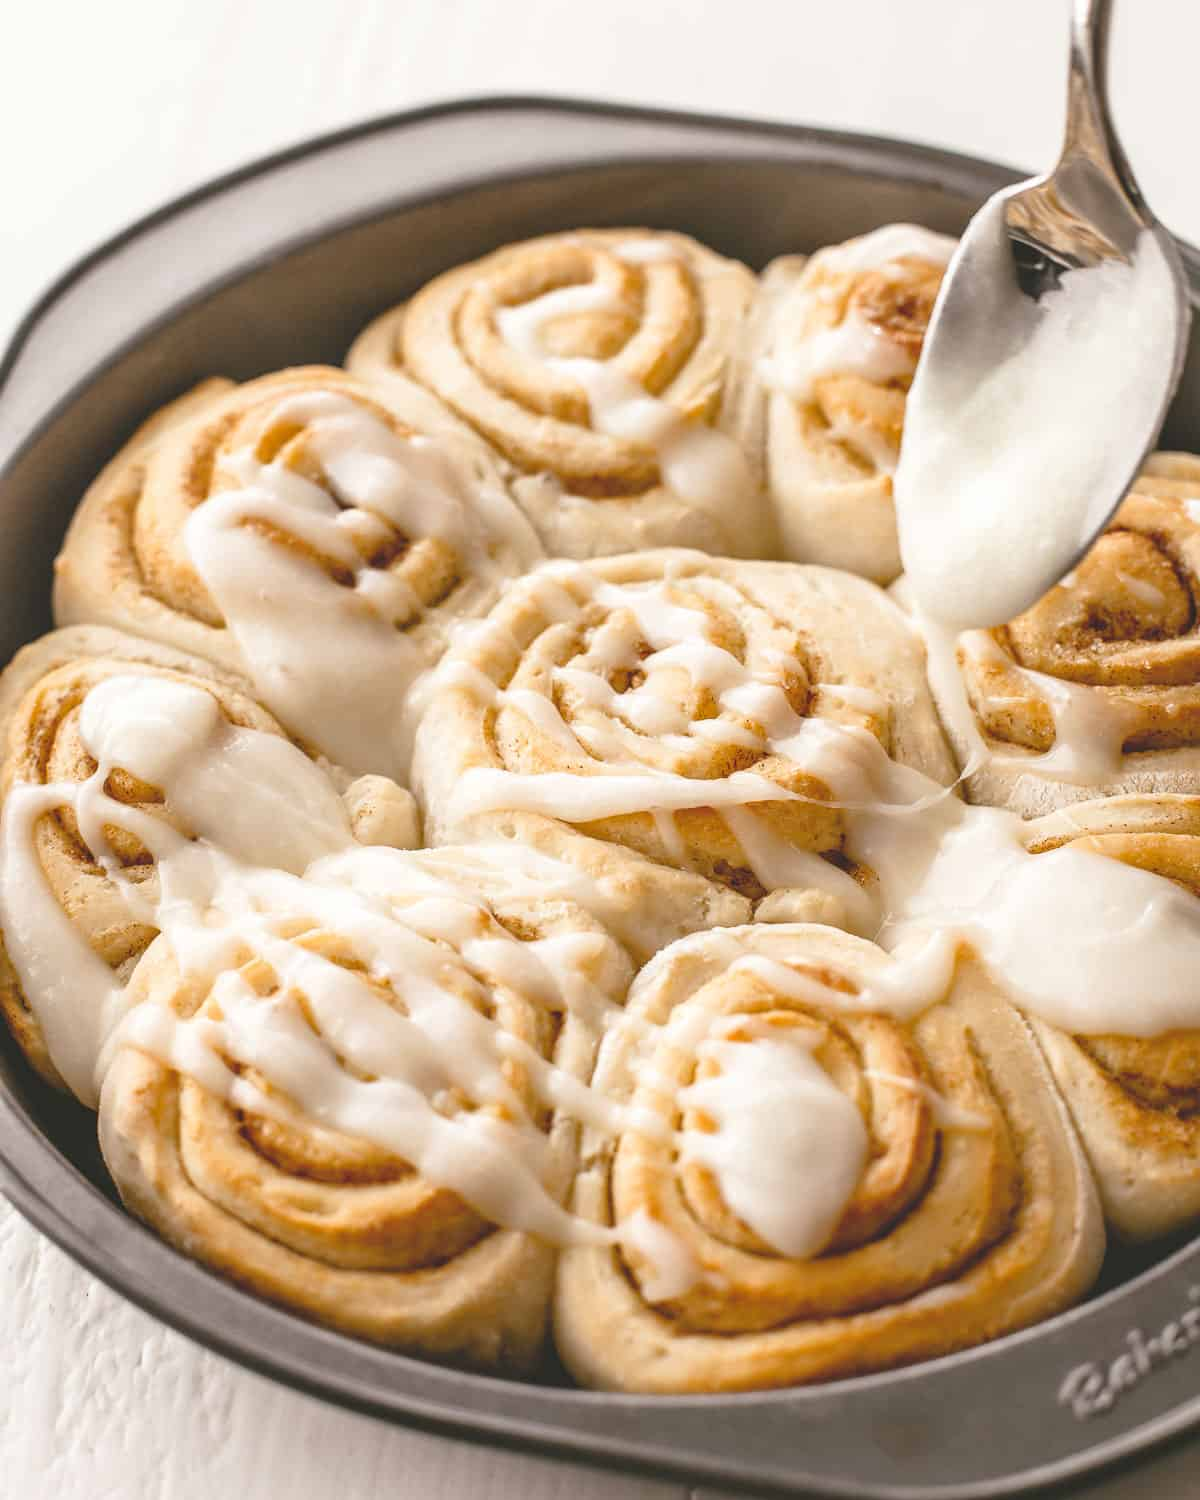 drizzling icing on top of cinnamon rolls